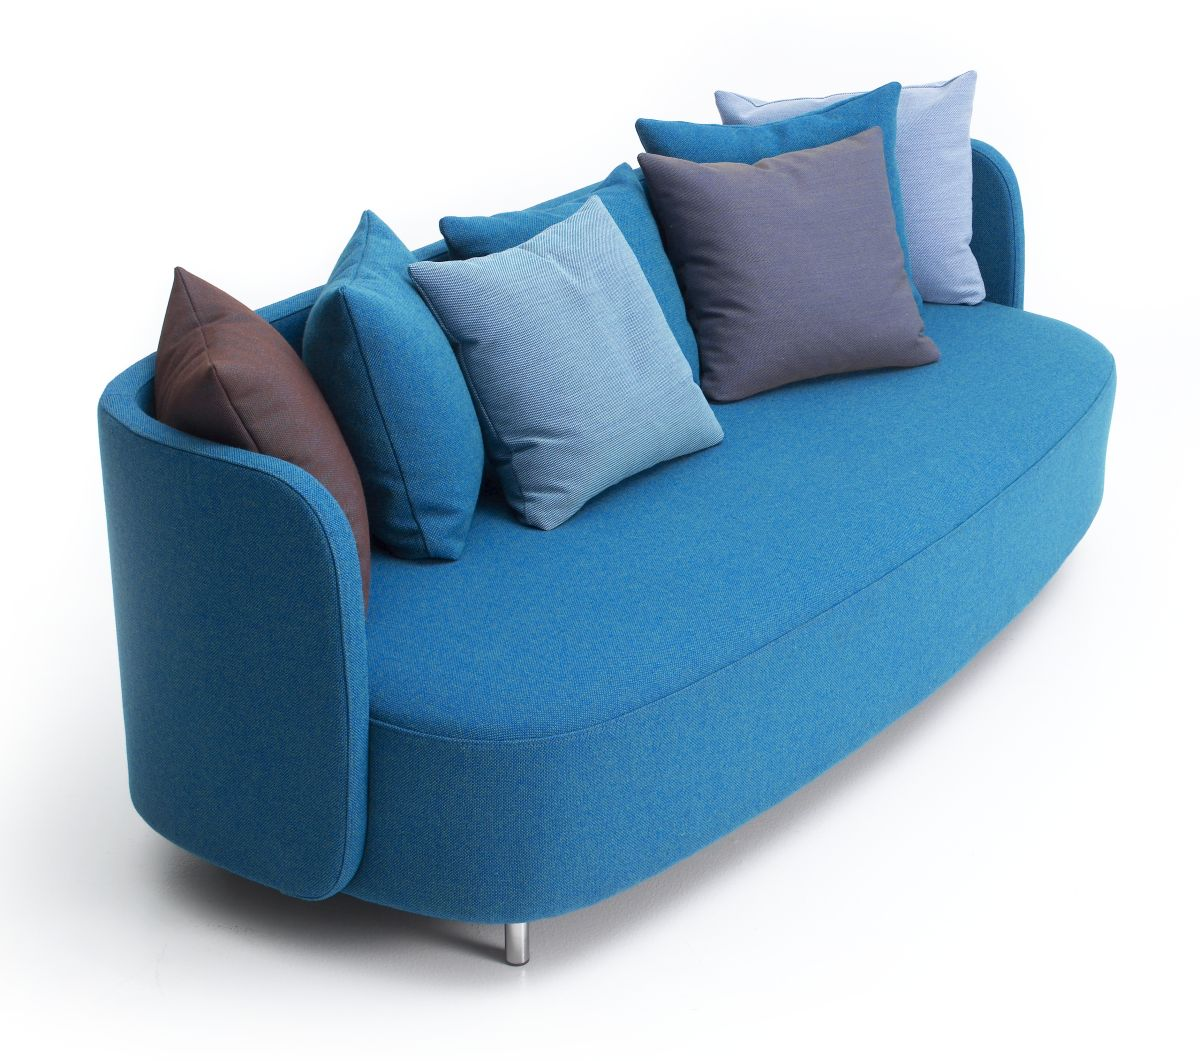 Blue Sofas: Unique And Enlightening Furniture : Simple Sofas Colored Cushion Steel Legs Low Armrest